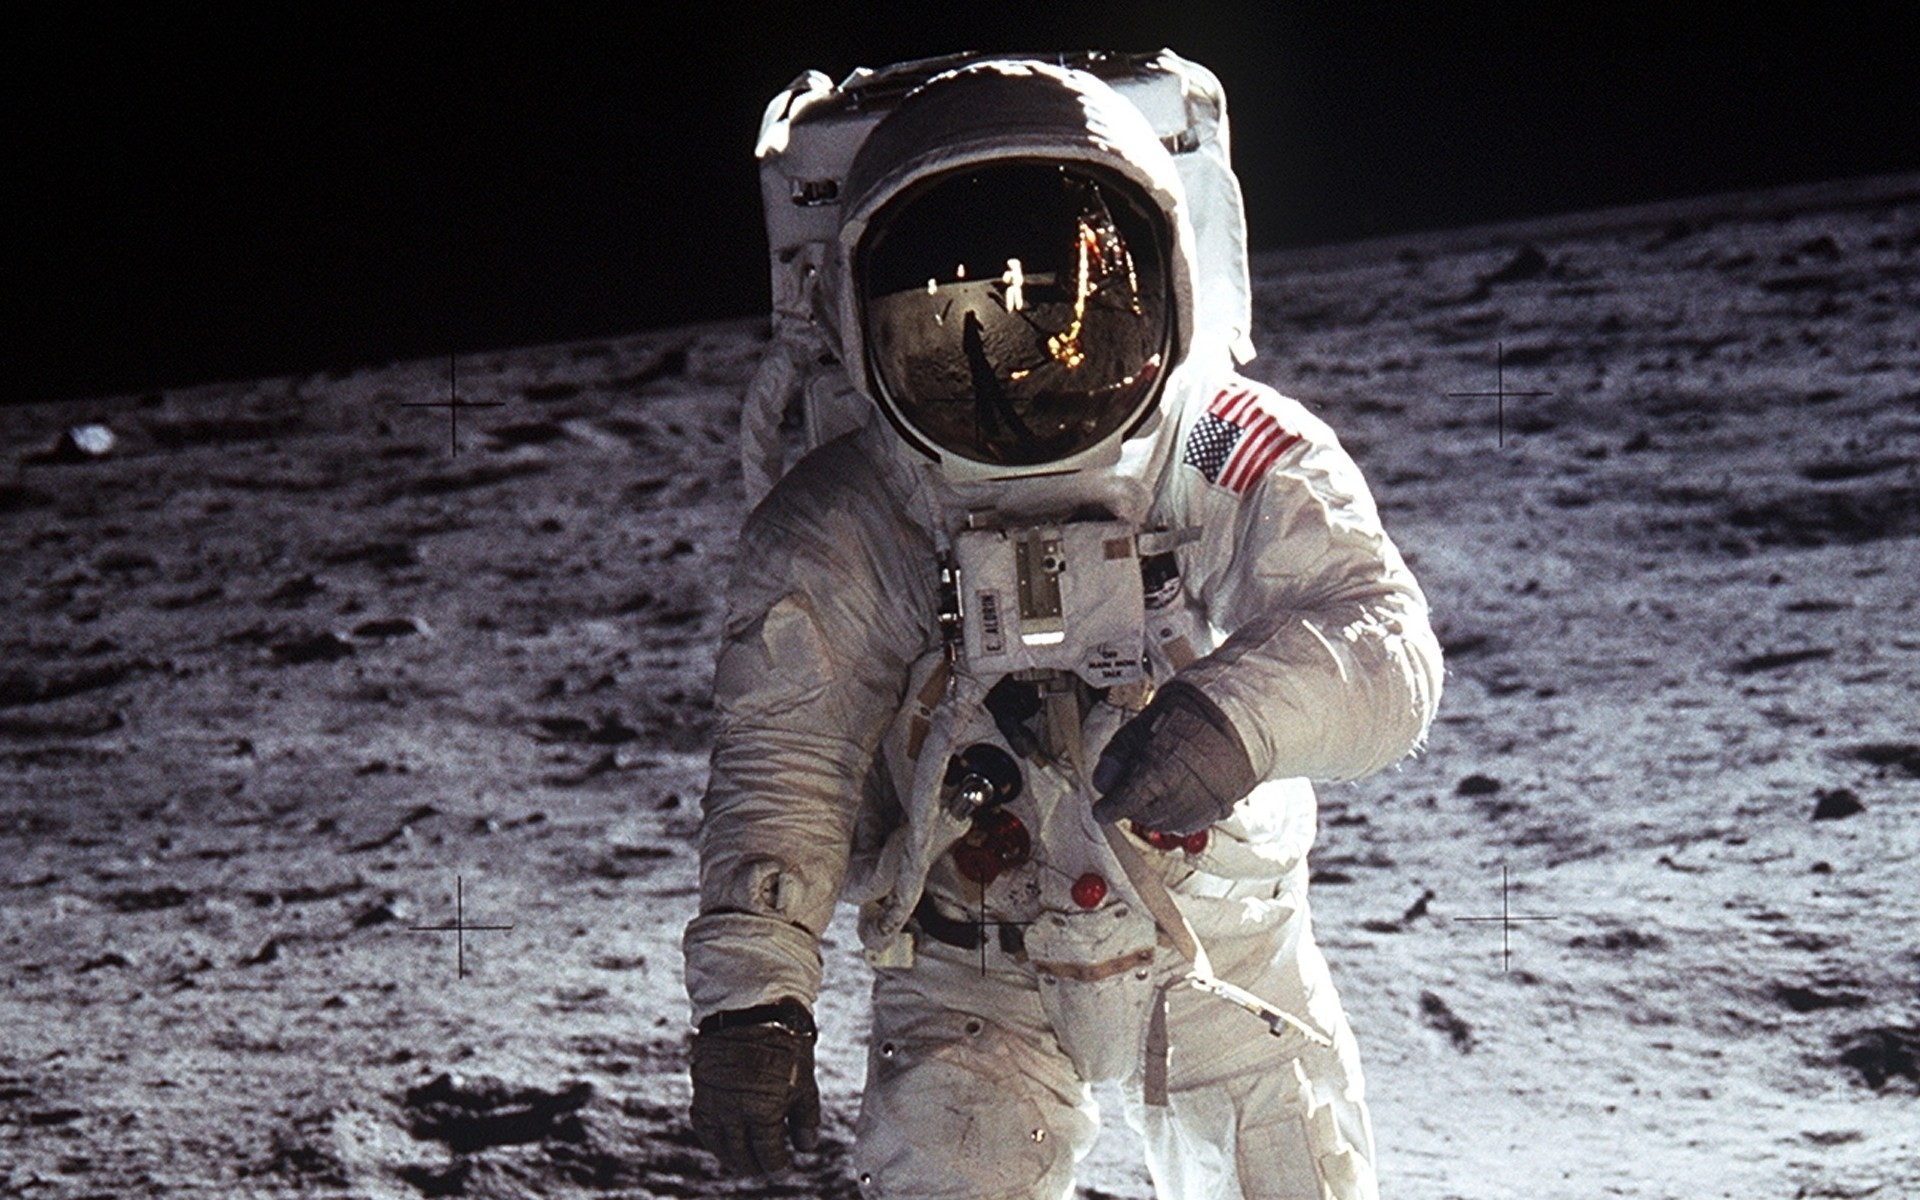 30673_space_mission_astronaut_on_the_moon